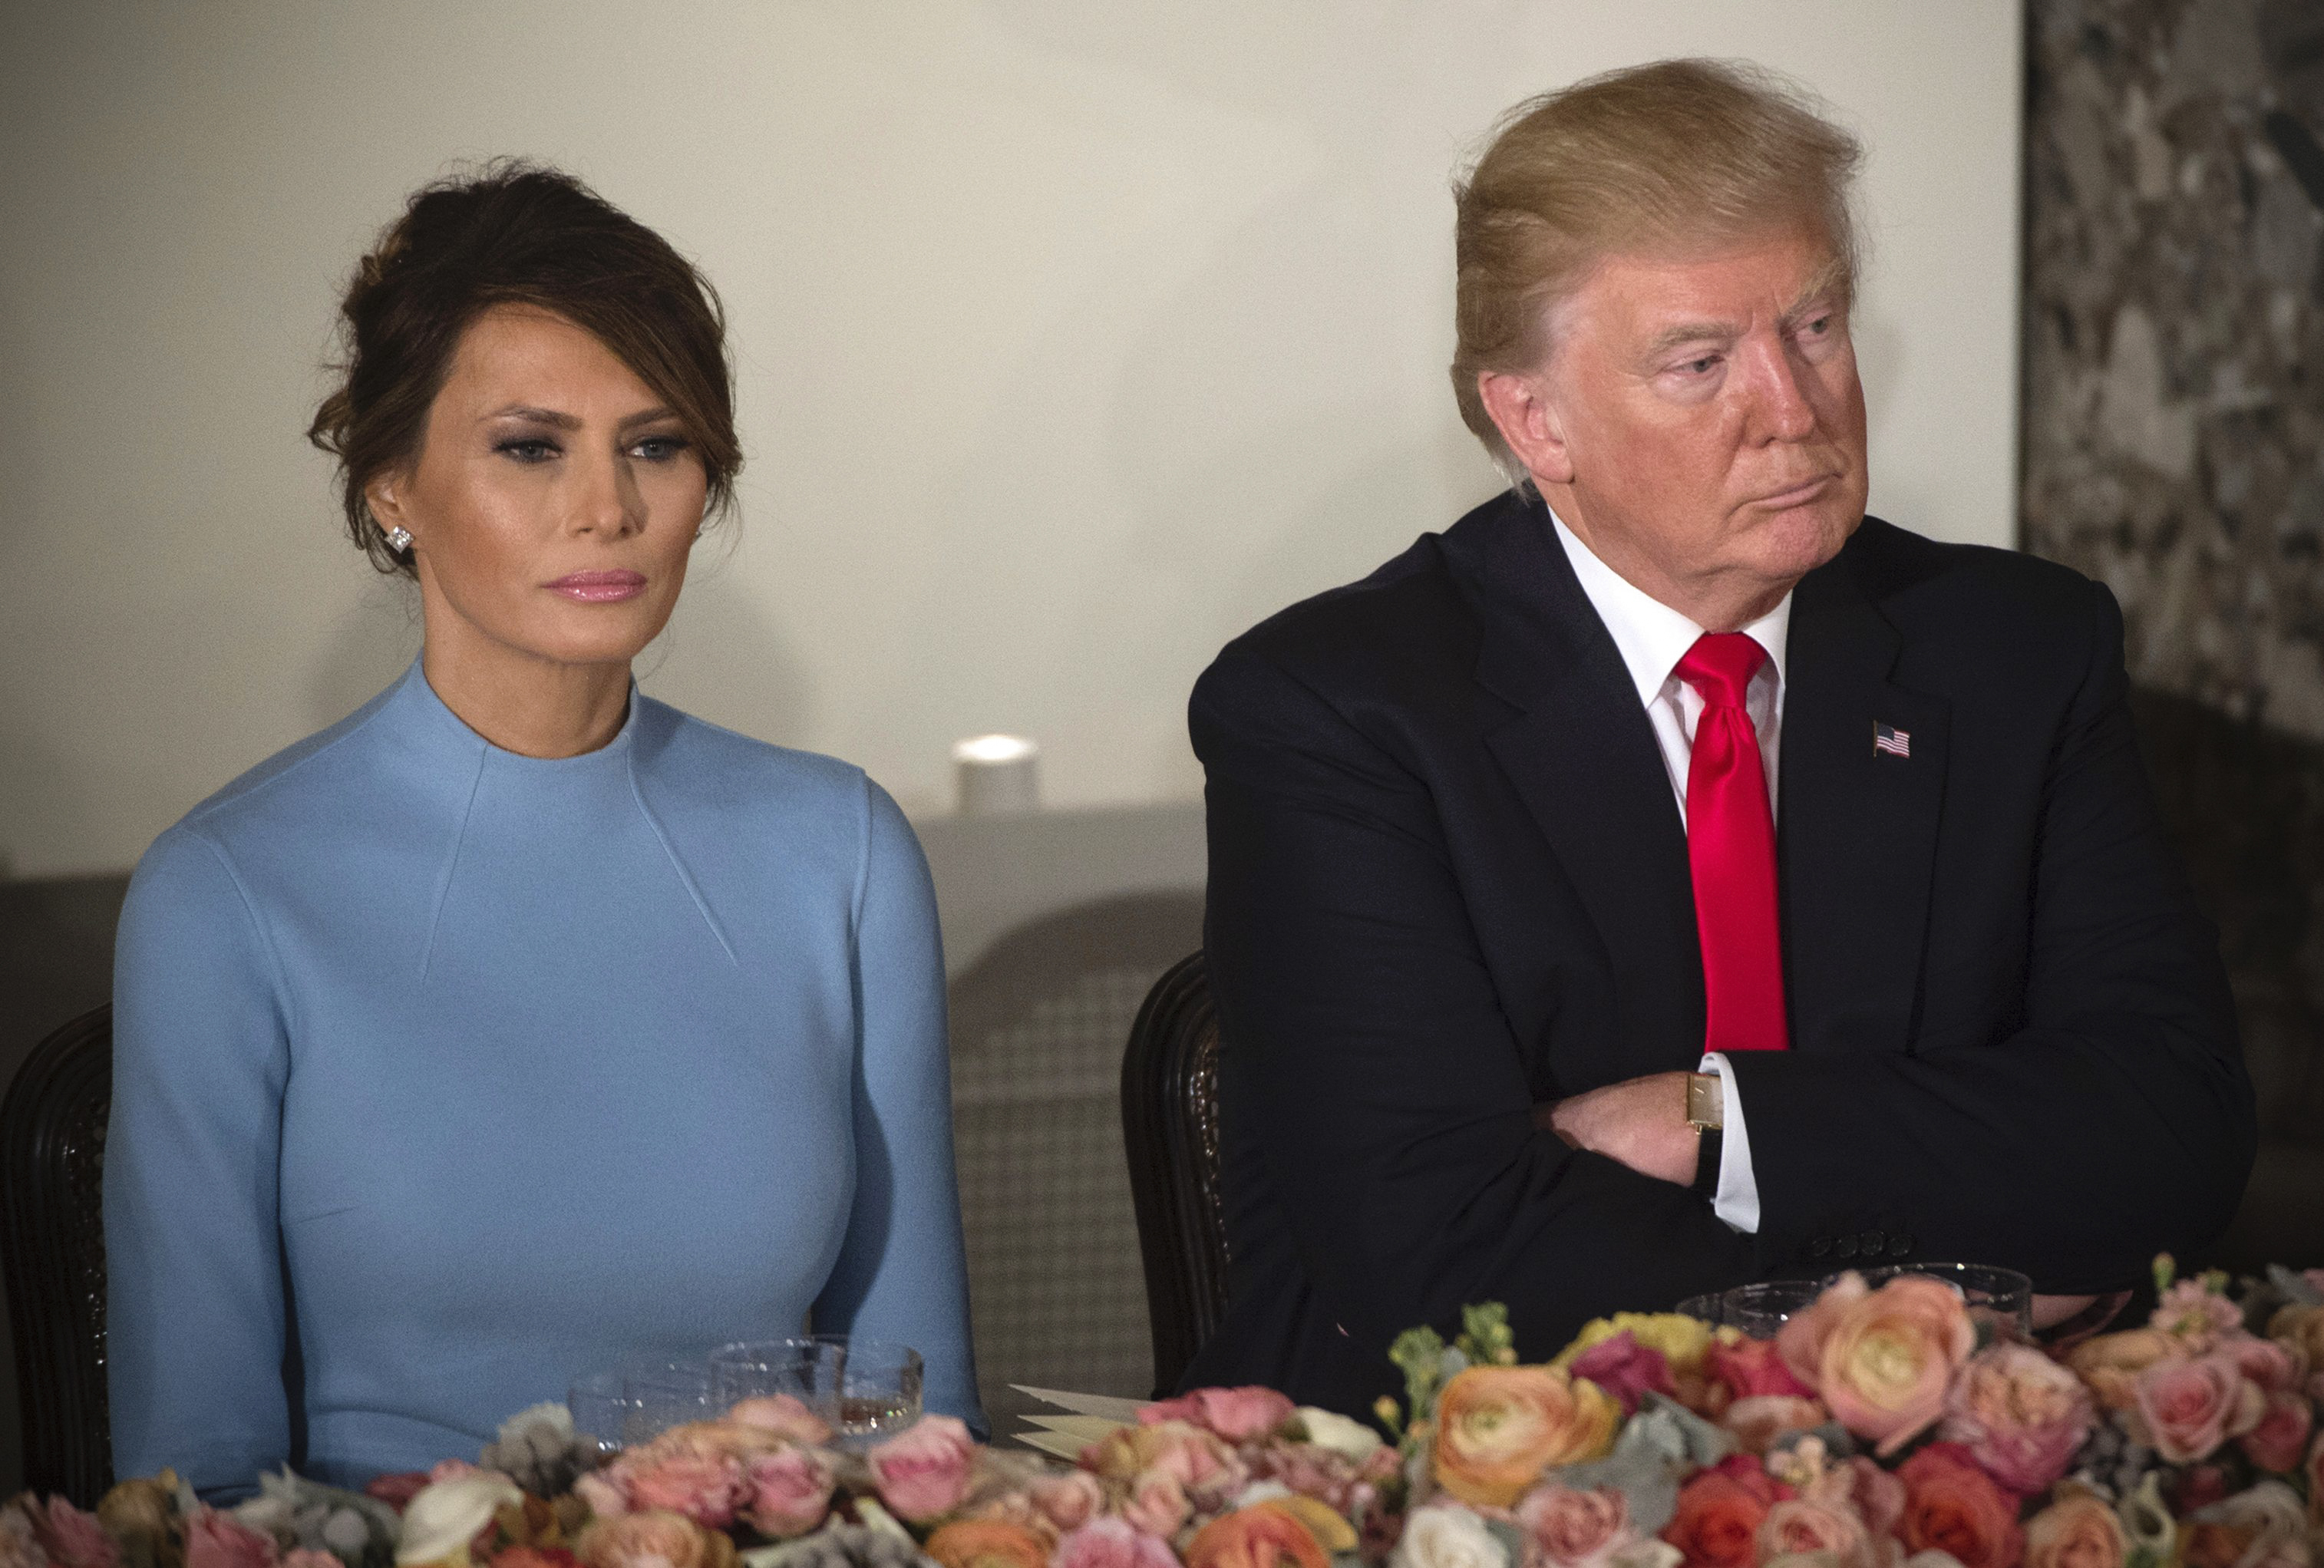 President Donald Trump and First Lady Melania Trump attend the Inaugural Luncheon at the US Capitol.